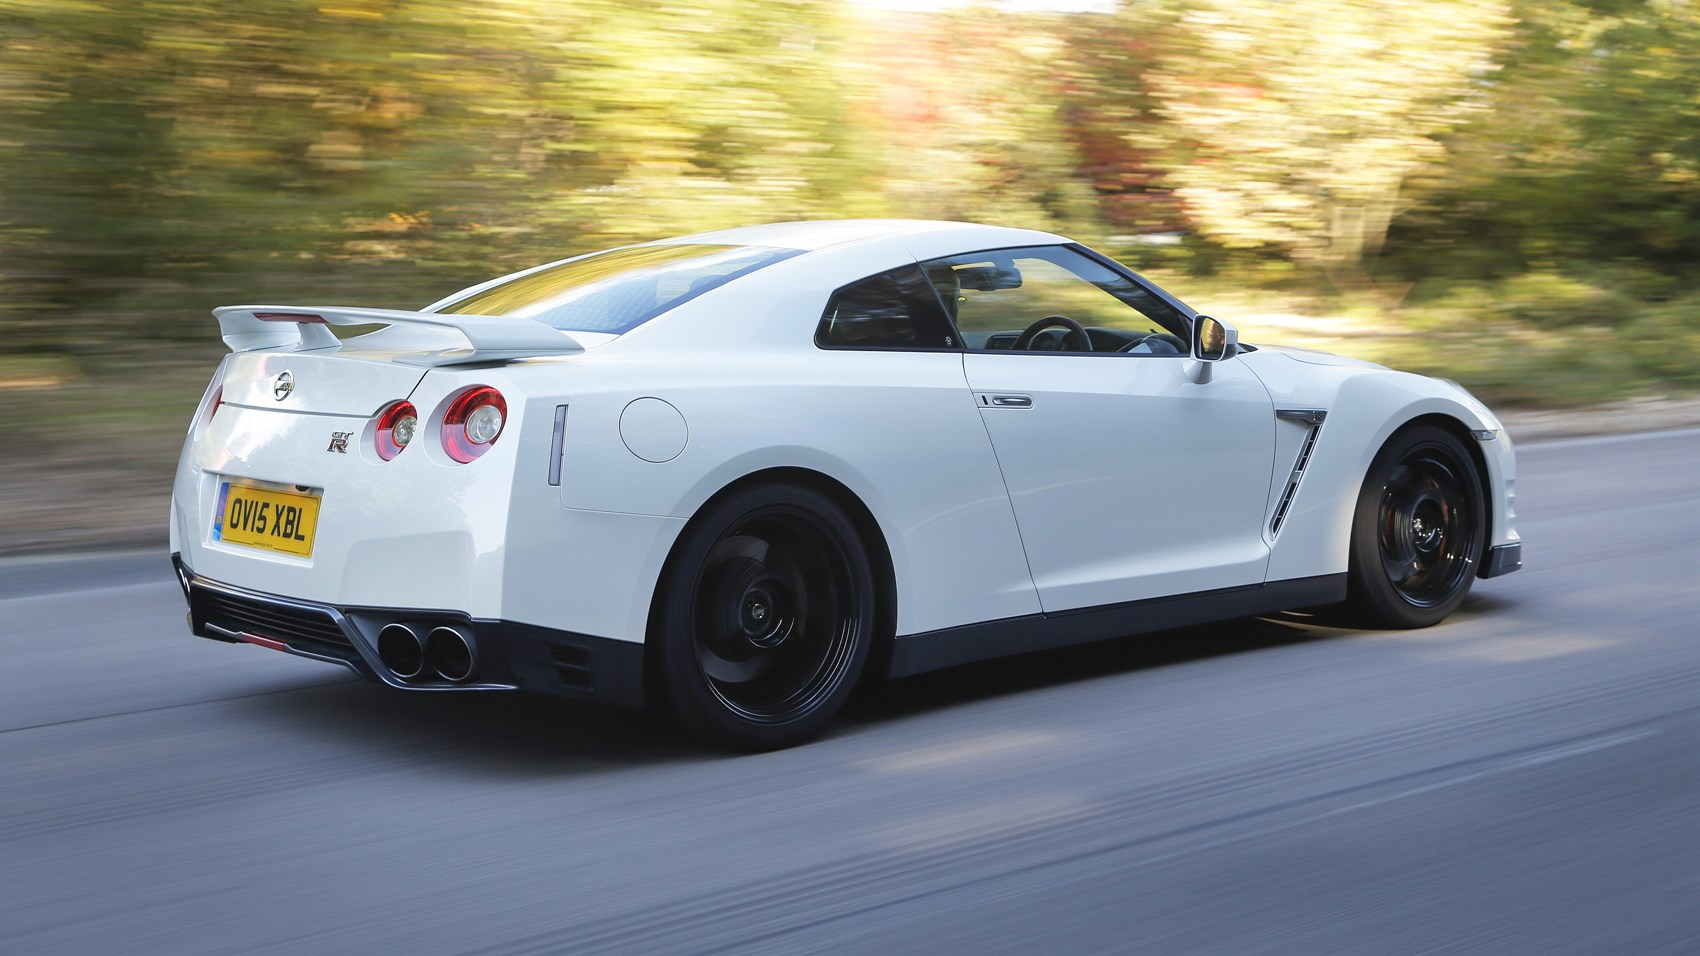 nissan gt r track edition engineered by nismo 2016 review car magazine. Black Bedroom Furniture Sets. Home Design Ideas